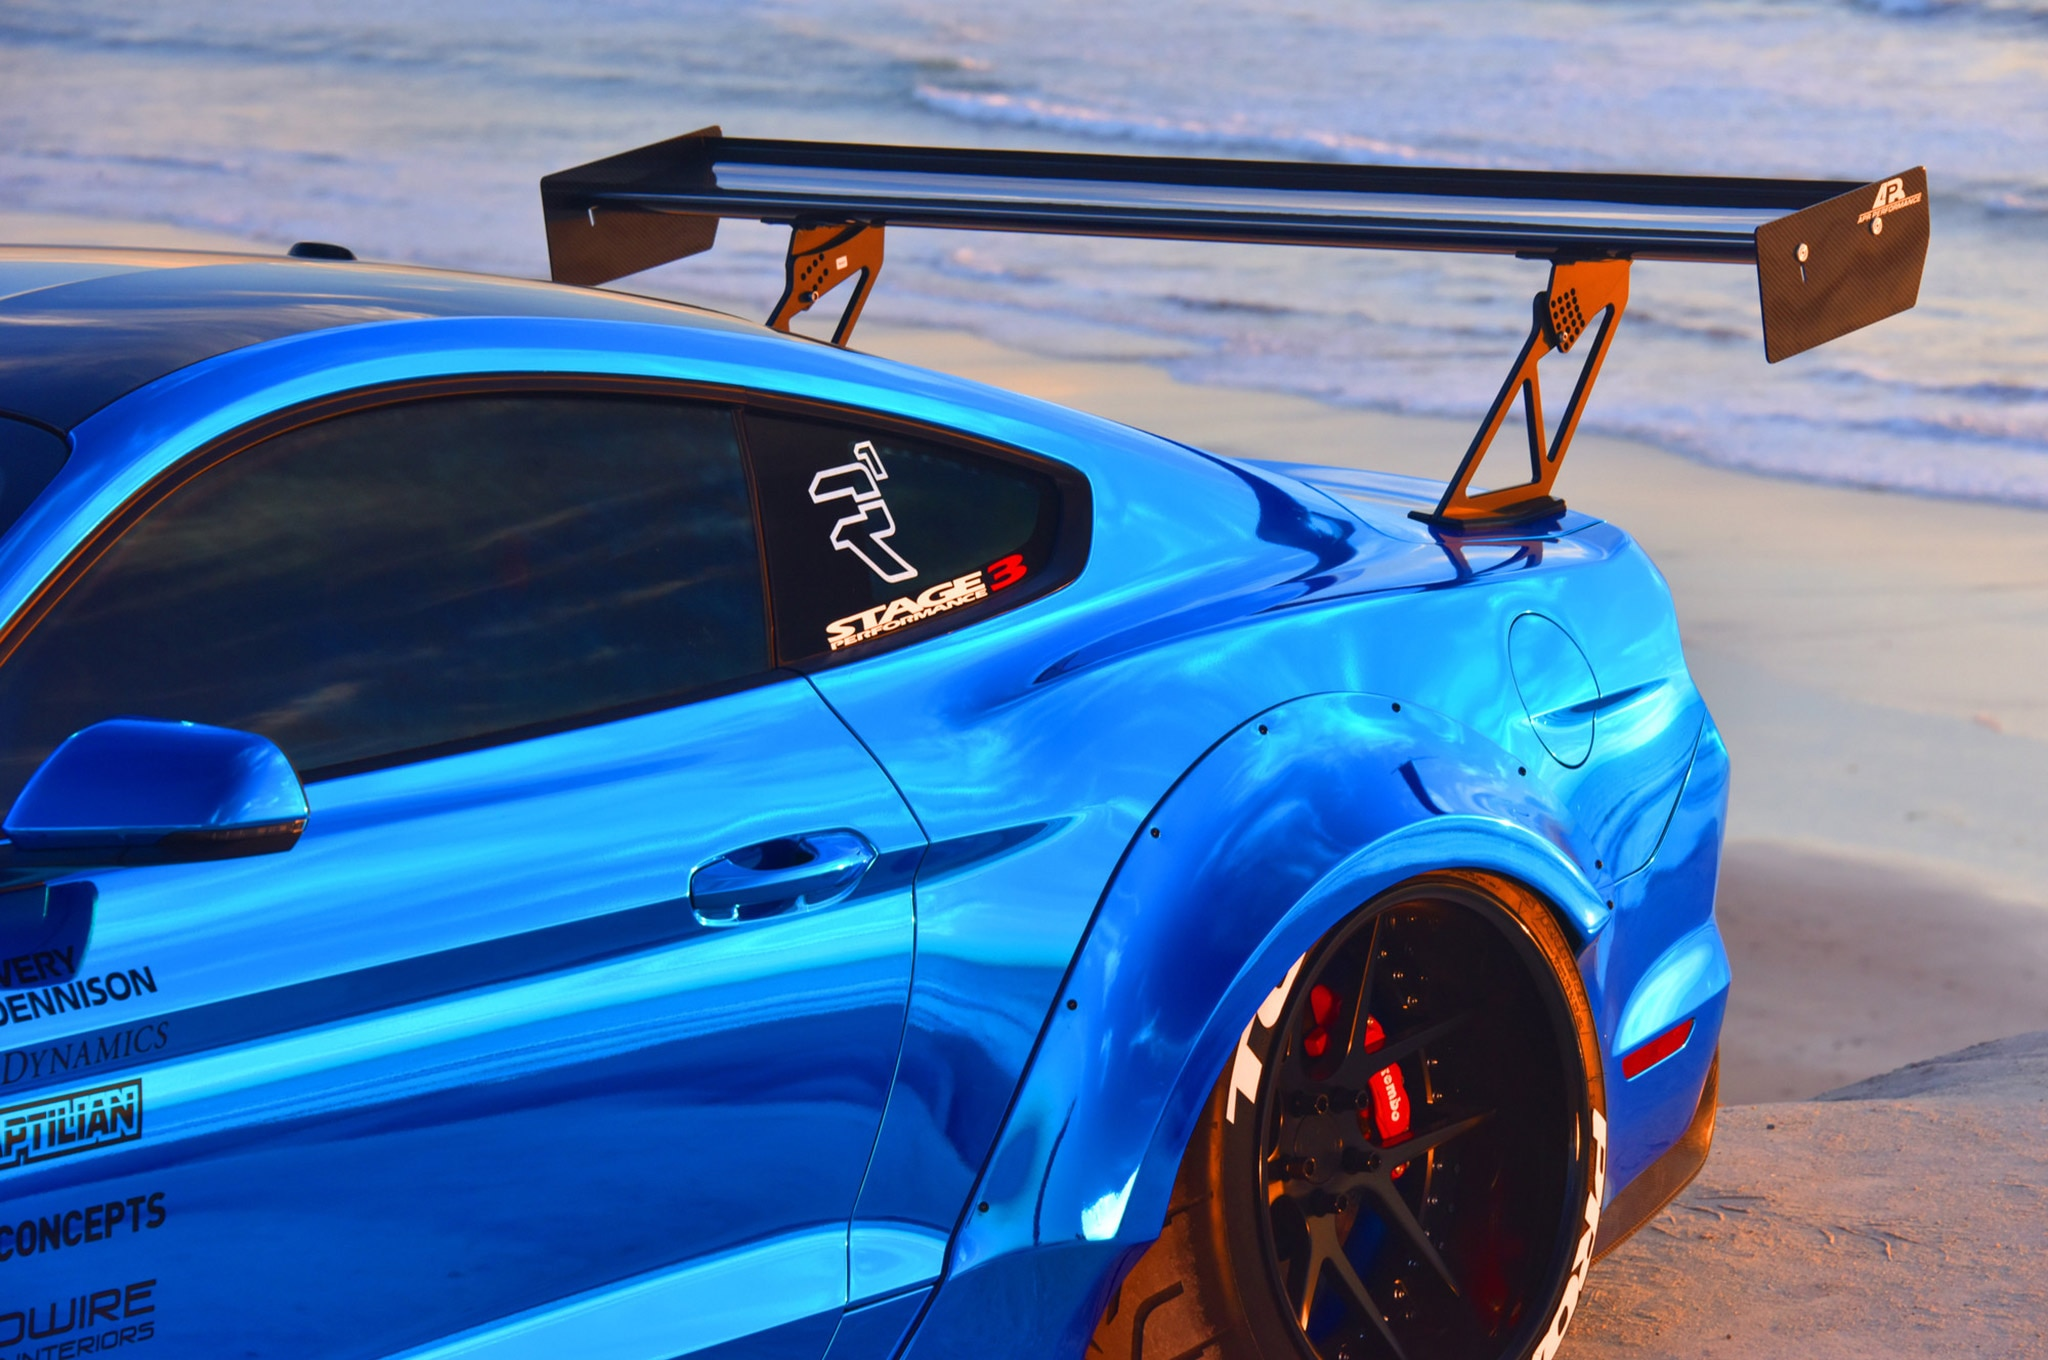 2015 Ford Mustang Blue Chrome Soto 27 Spoiler